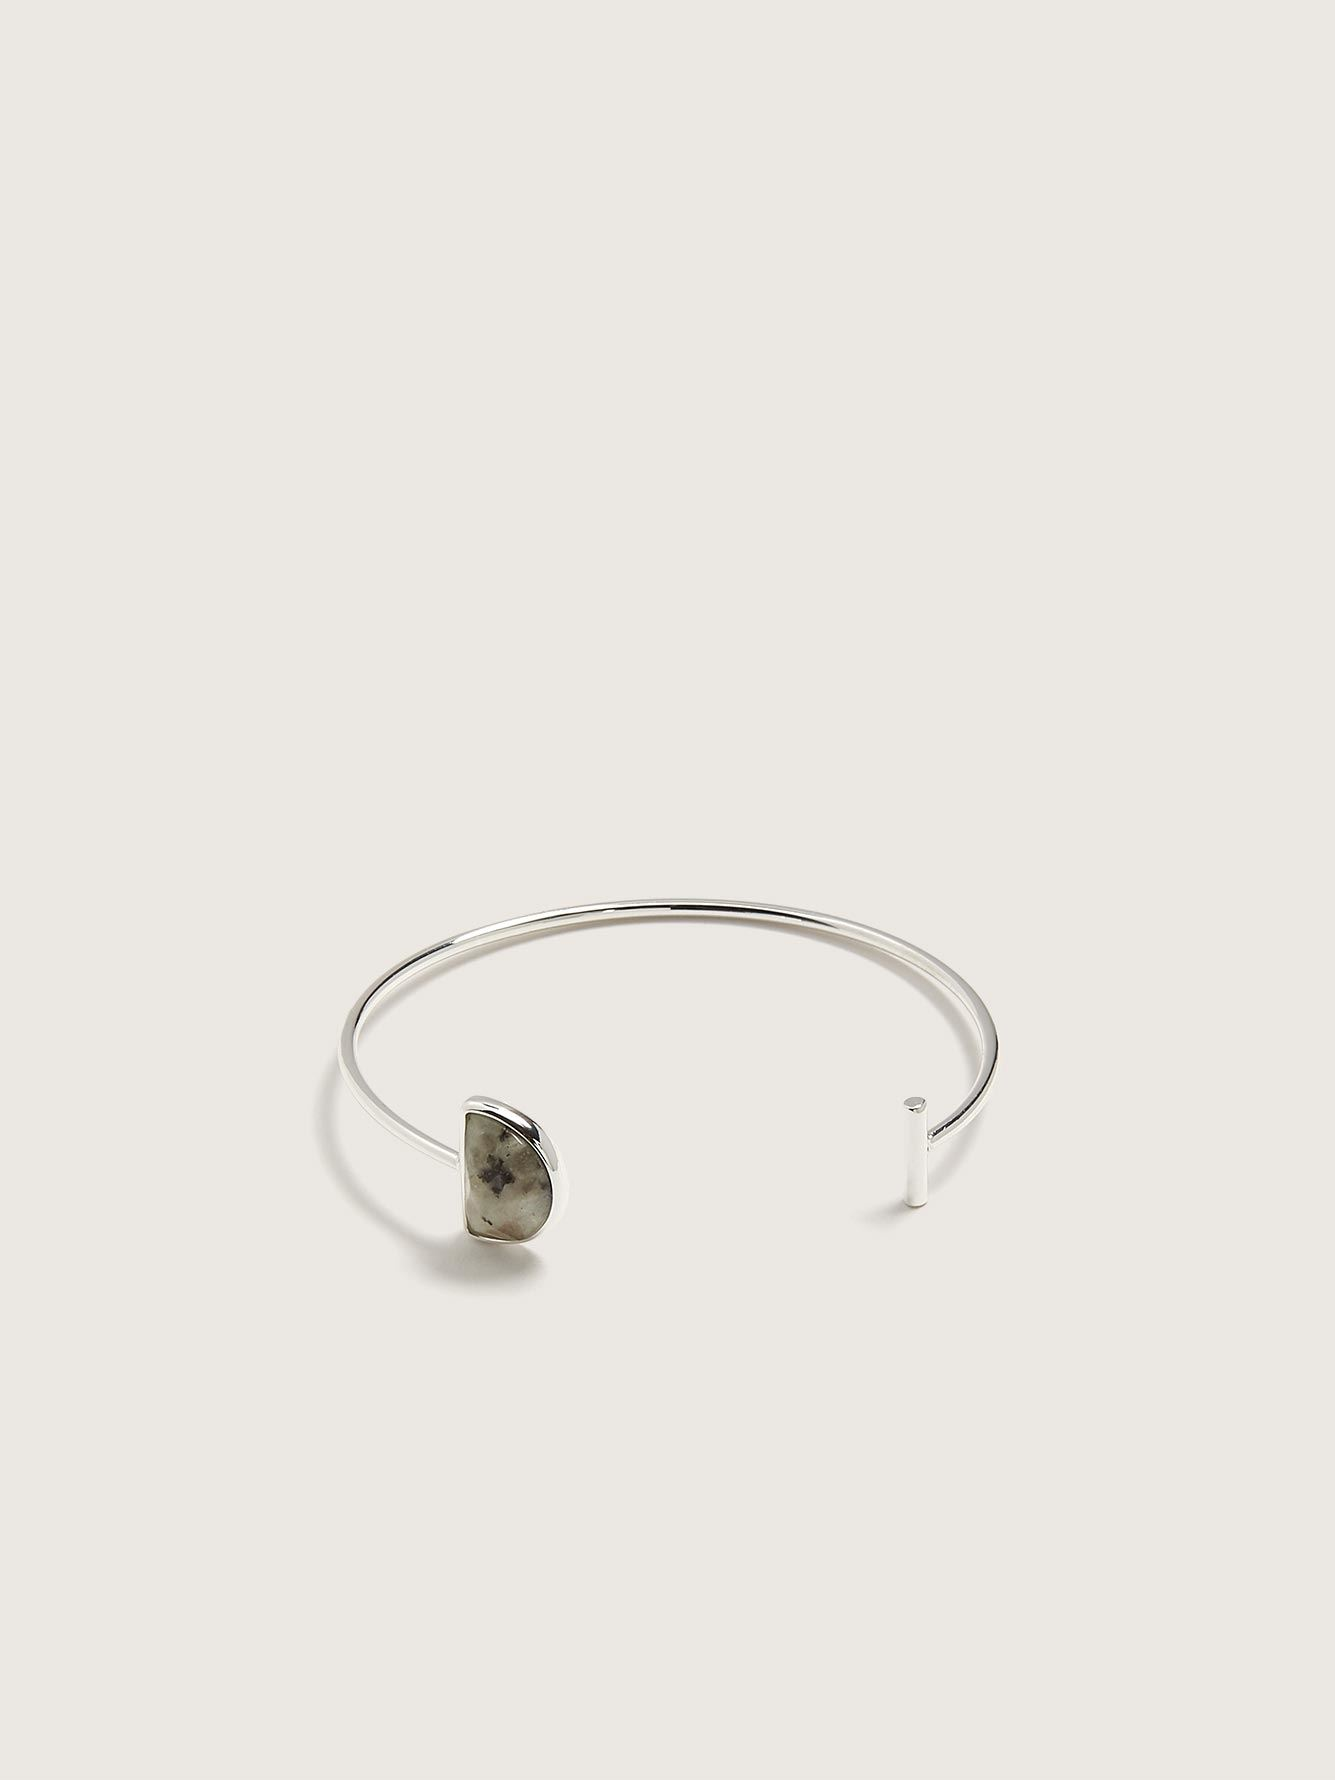 Cuff Bracelet with Semi-Precious Stone - Addition Elle